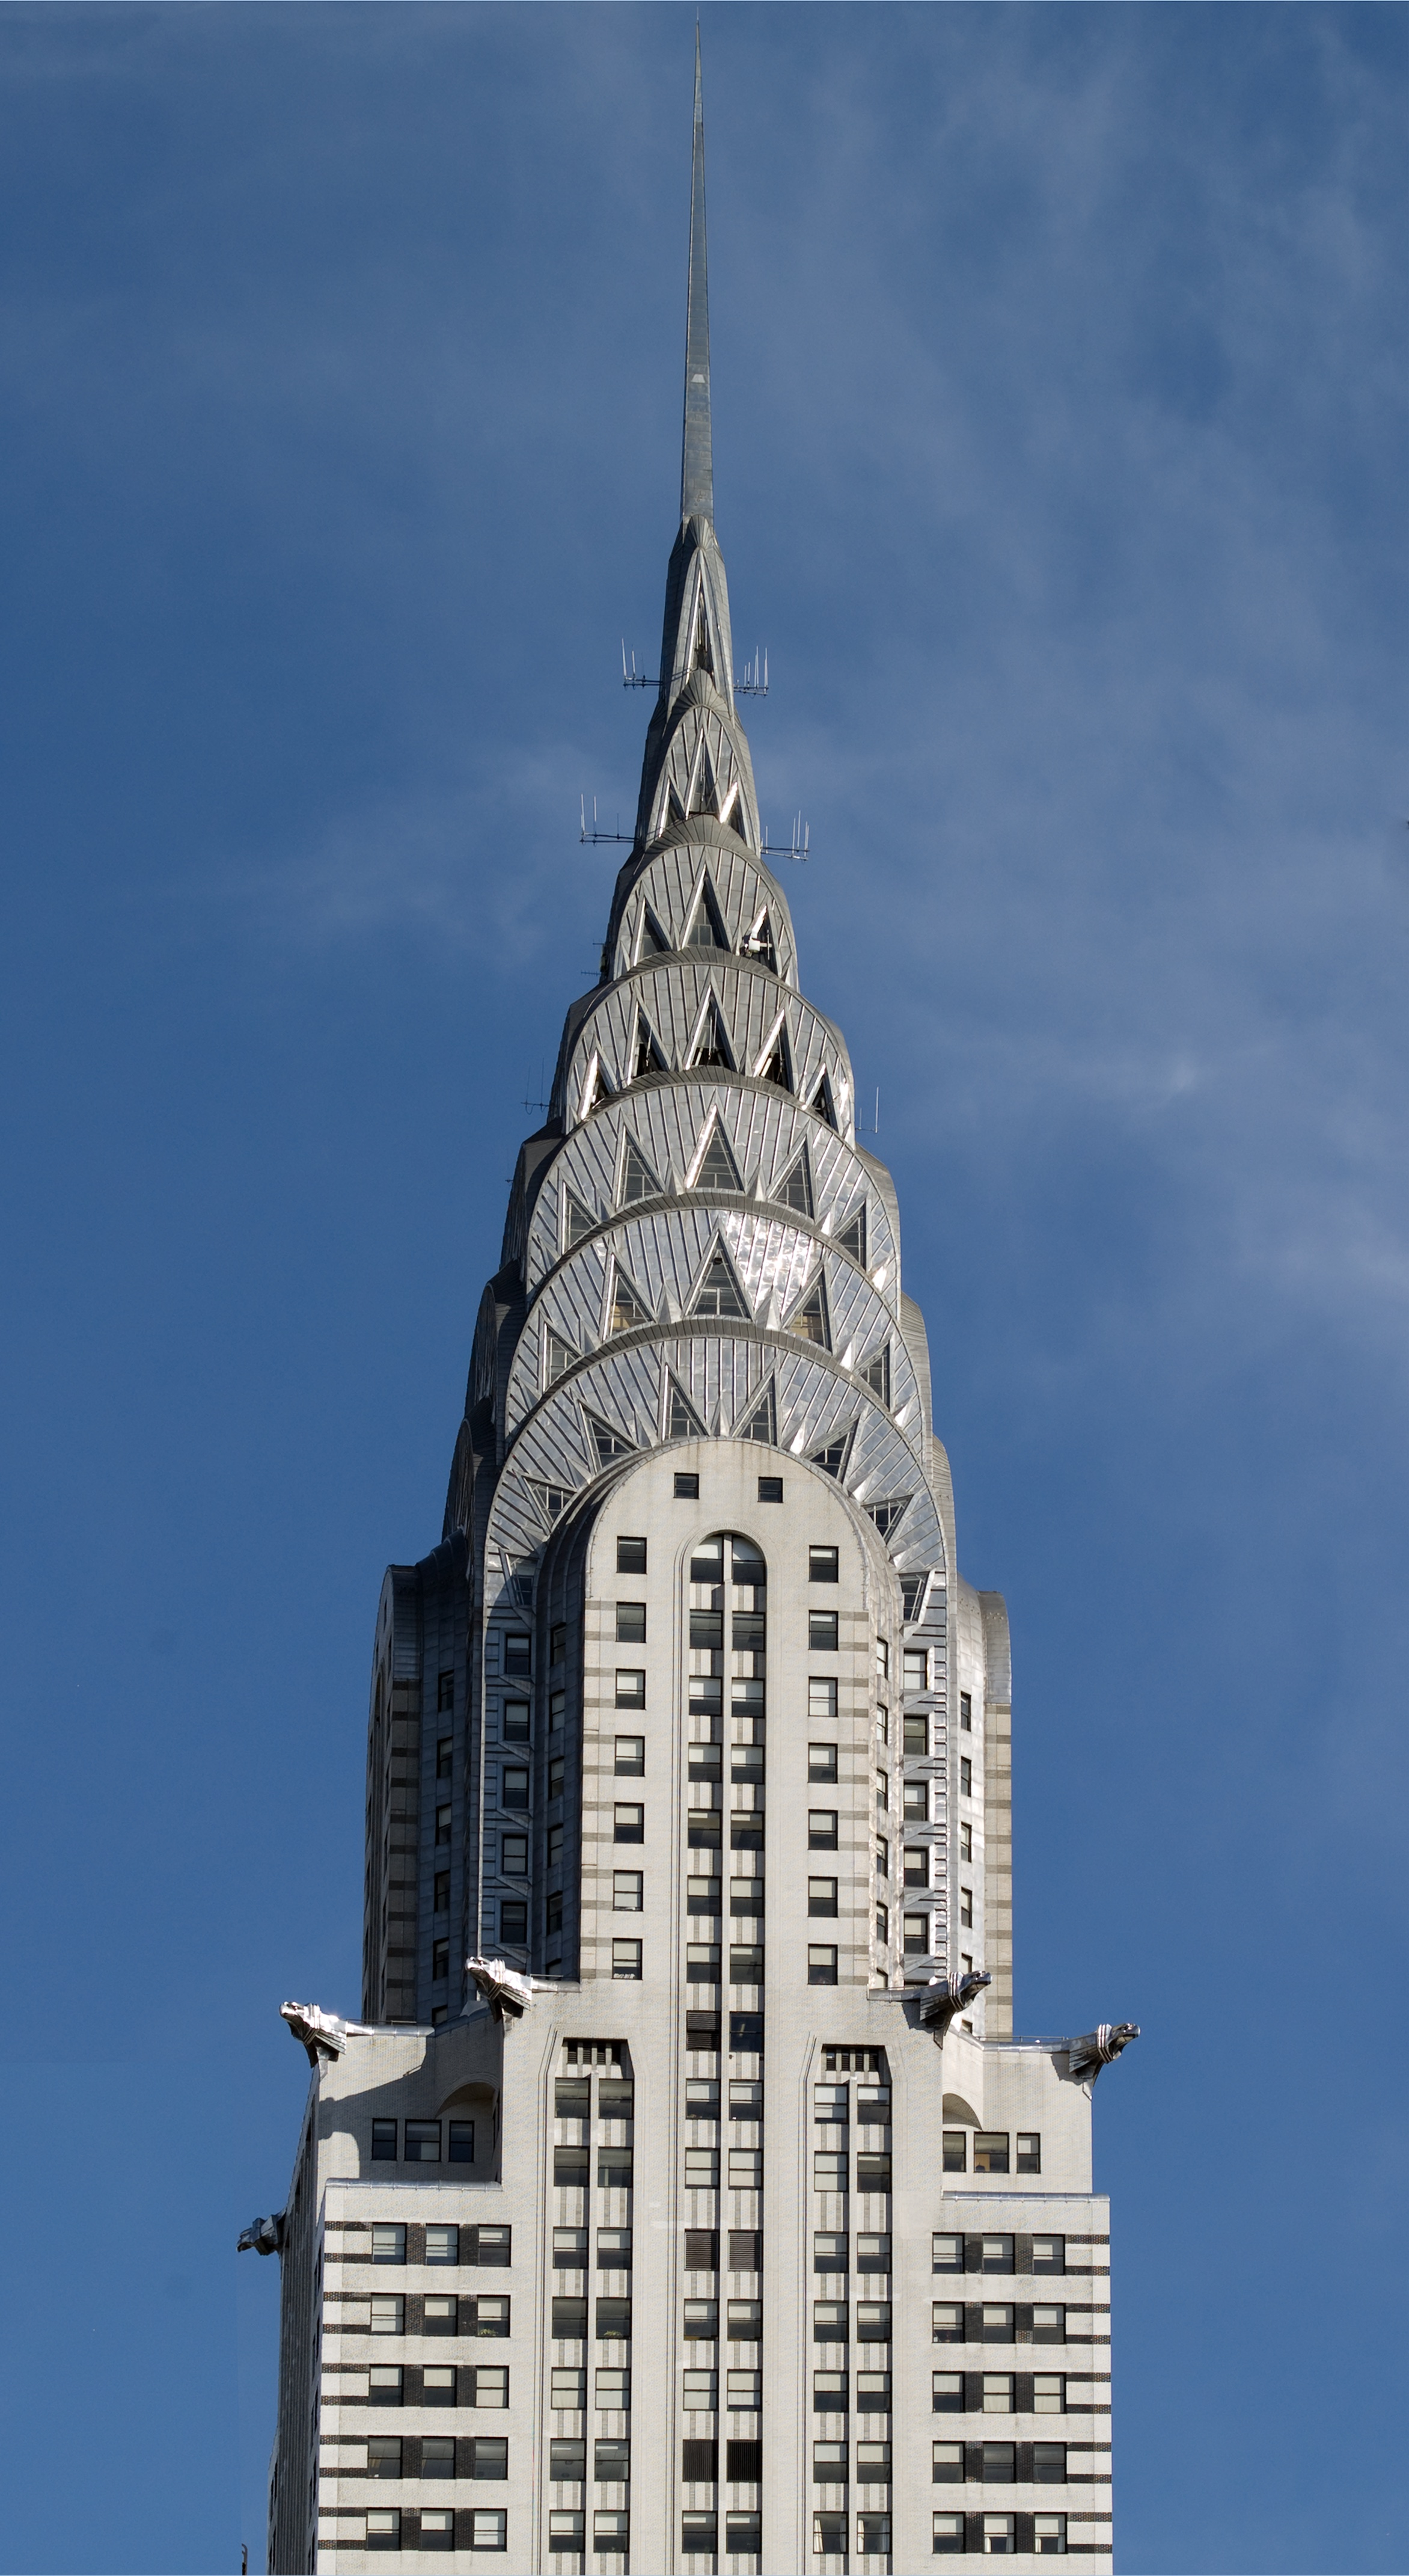 A pinnacle of architecture: the top of the Chrysler Building in New York City. Photograph by Carol M. Highsmith, 2007. From Carol M. Highsmith's America, U.S. Library of Congress, Prints and Photographs Division, LC-DIG-highsm-04444); used with permission.